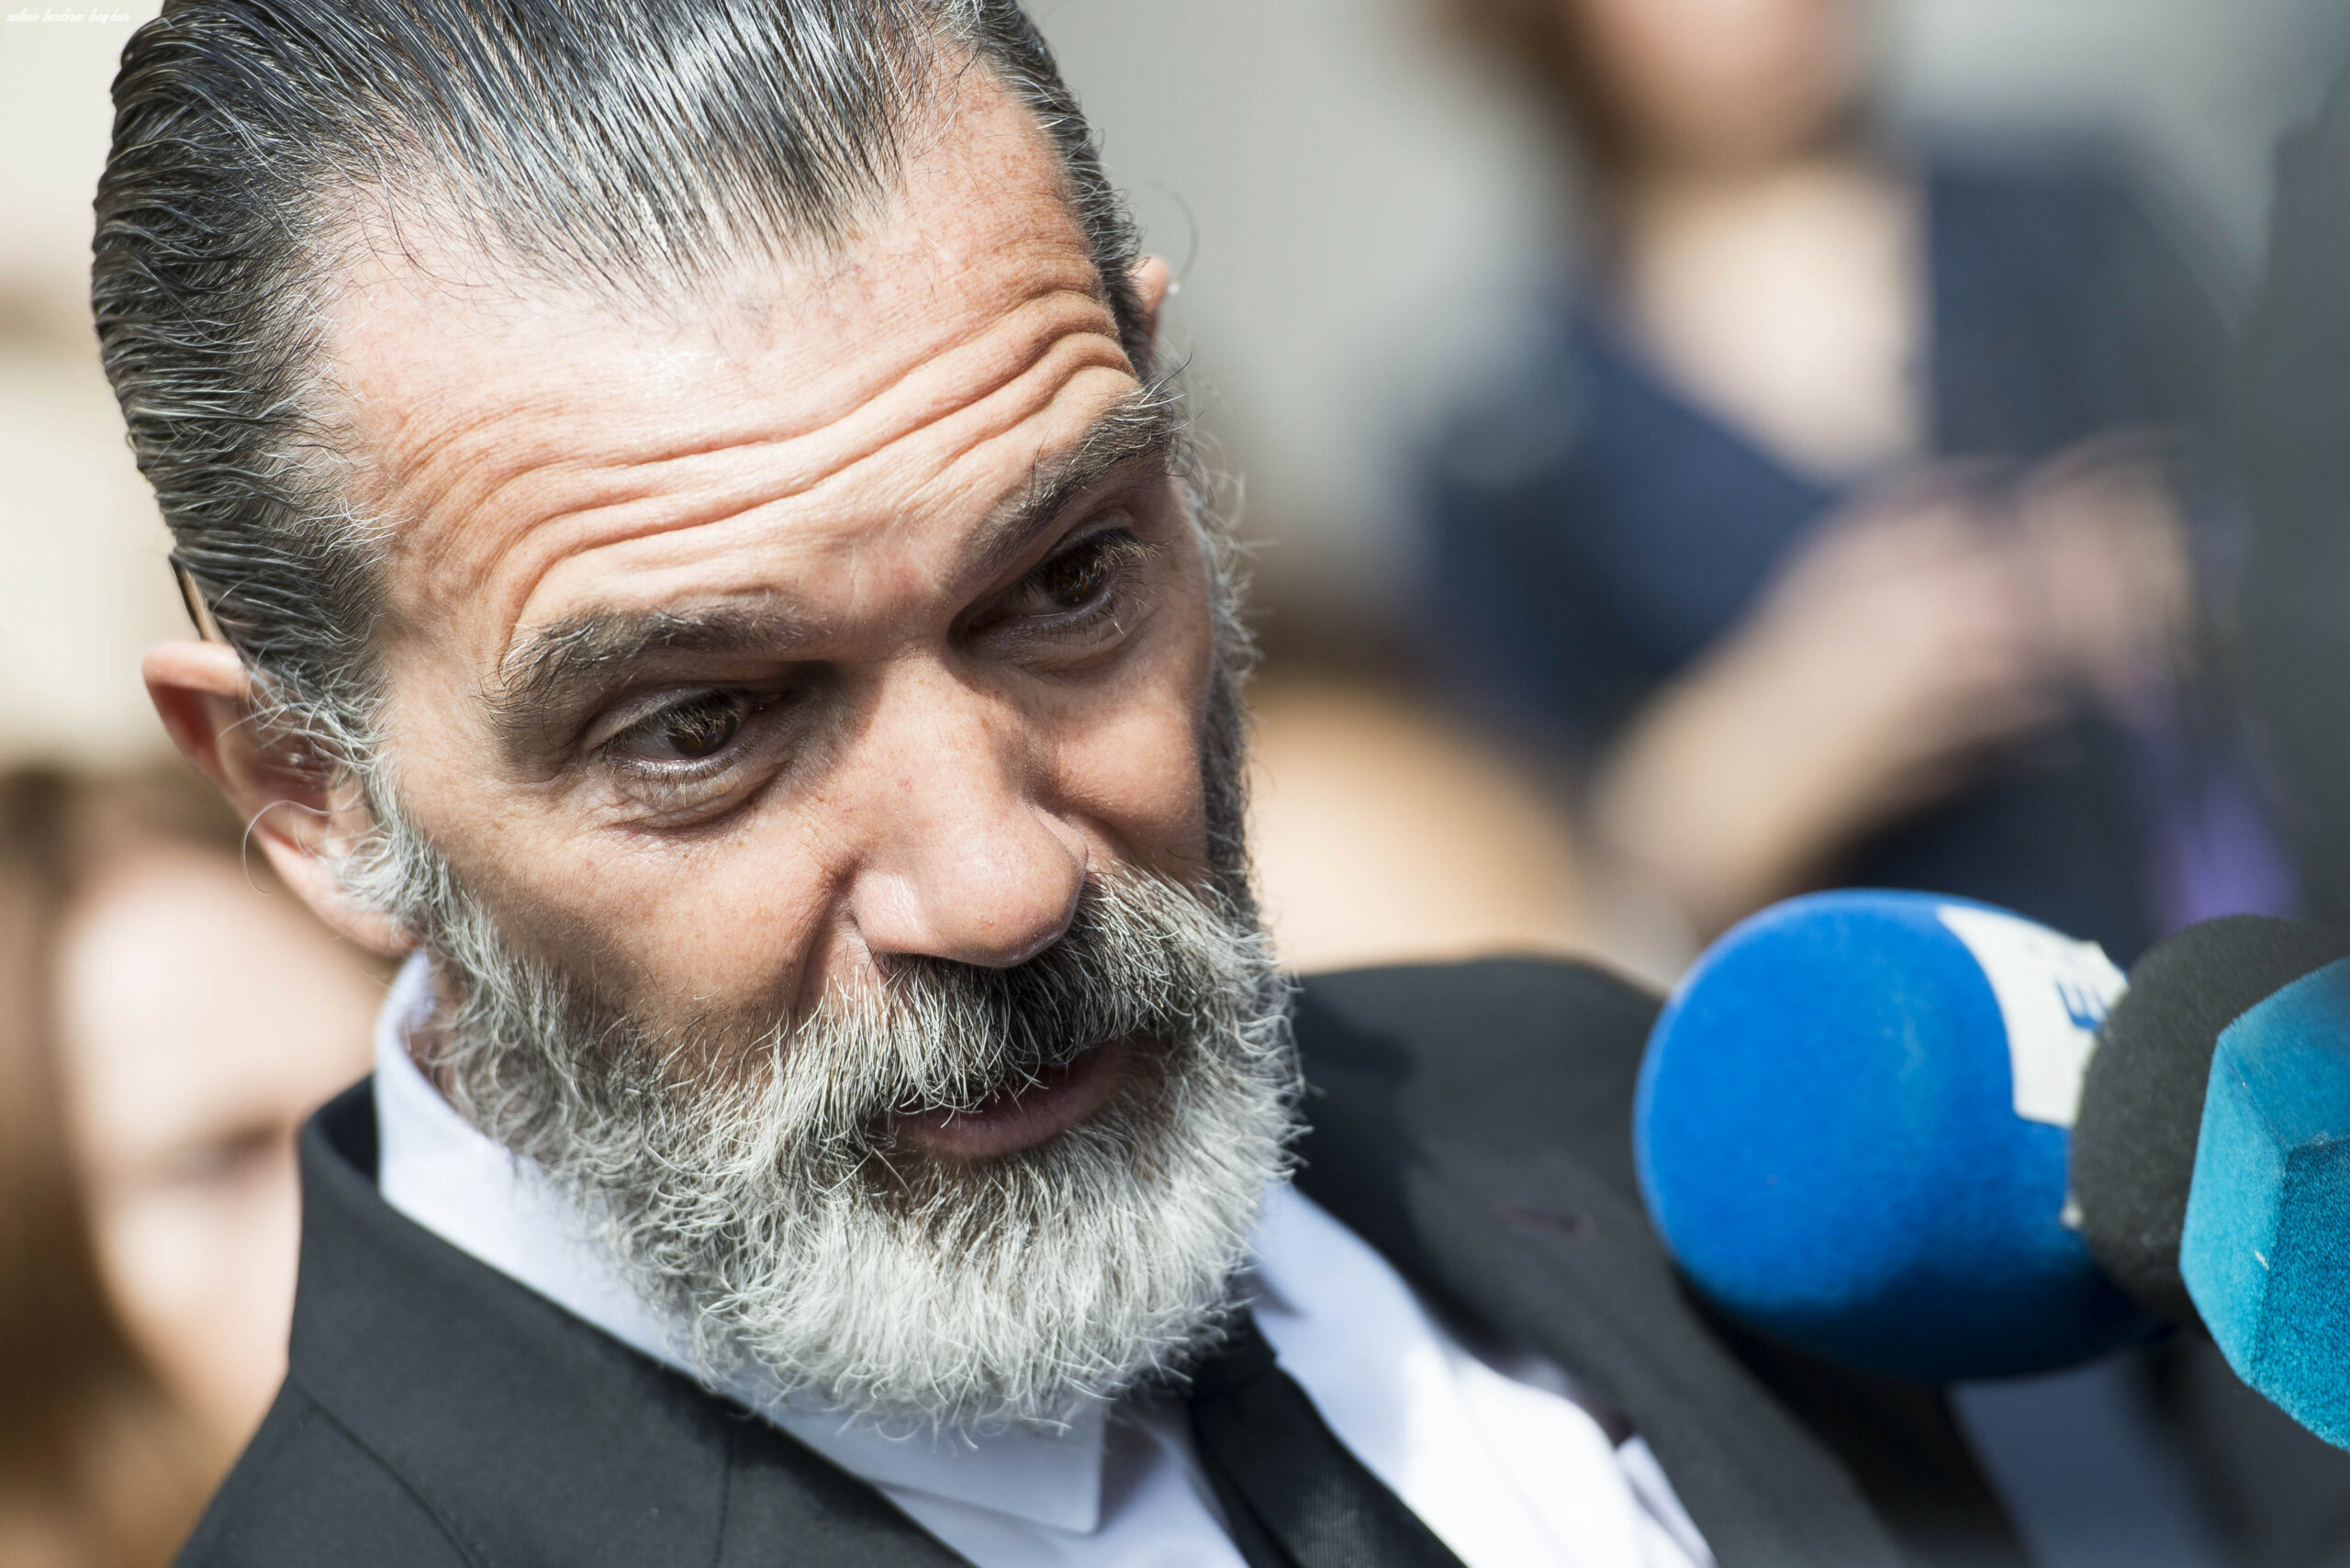 Antonio banderas looks very different after shaving off his hair